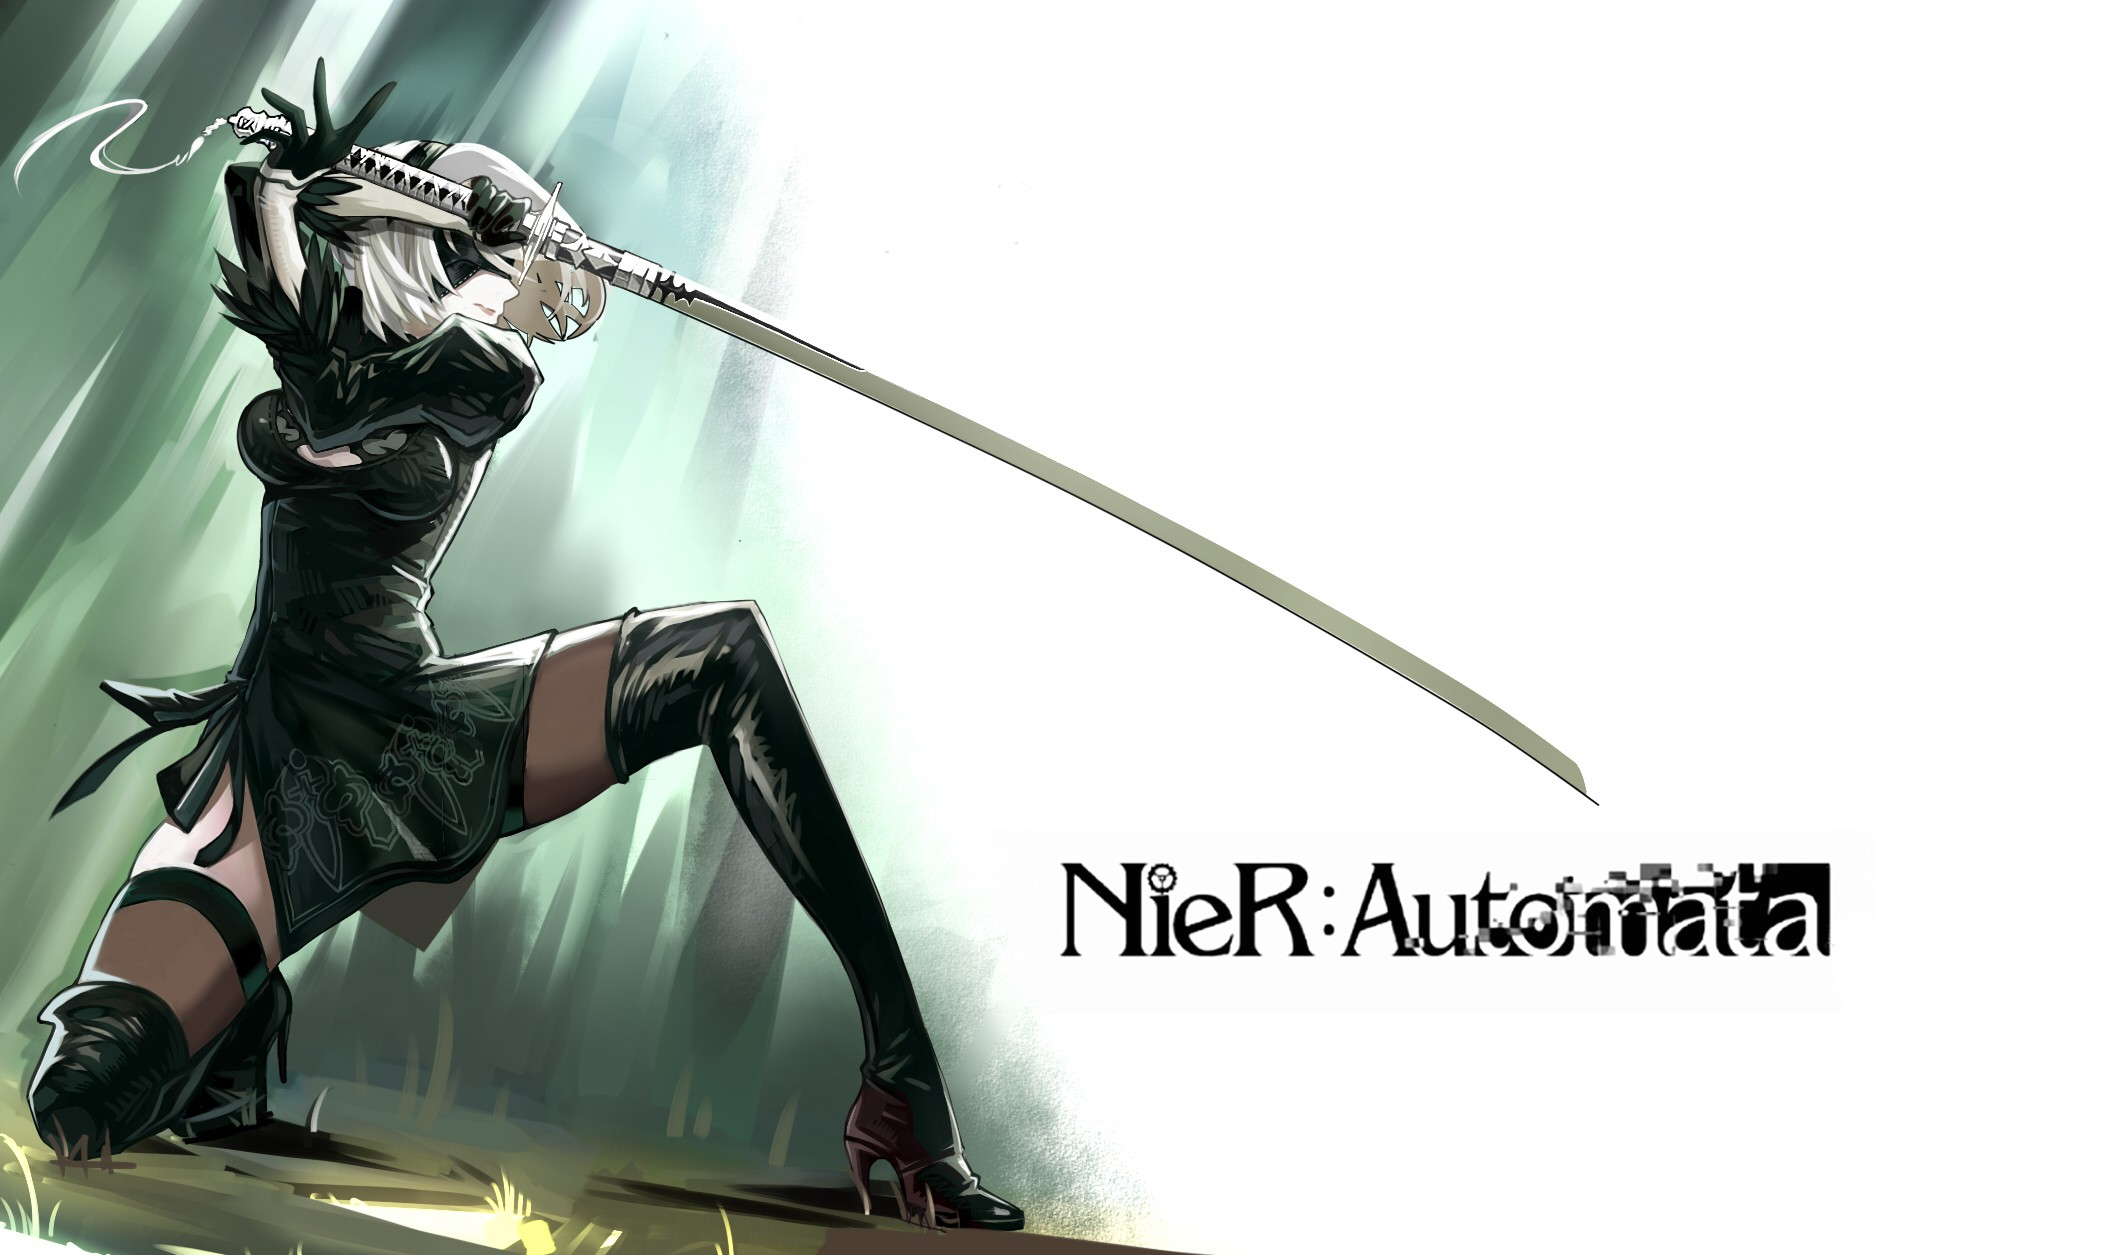 Nier Automata Wallpaper 183 ① Download Free Cool High